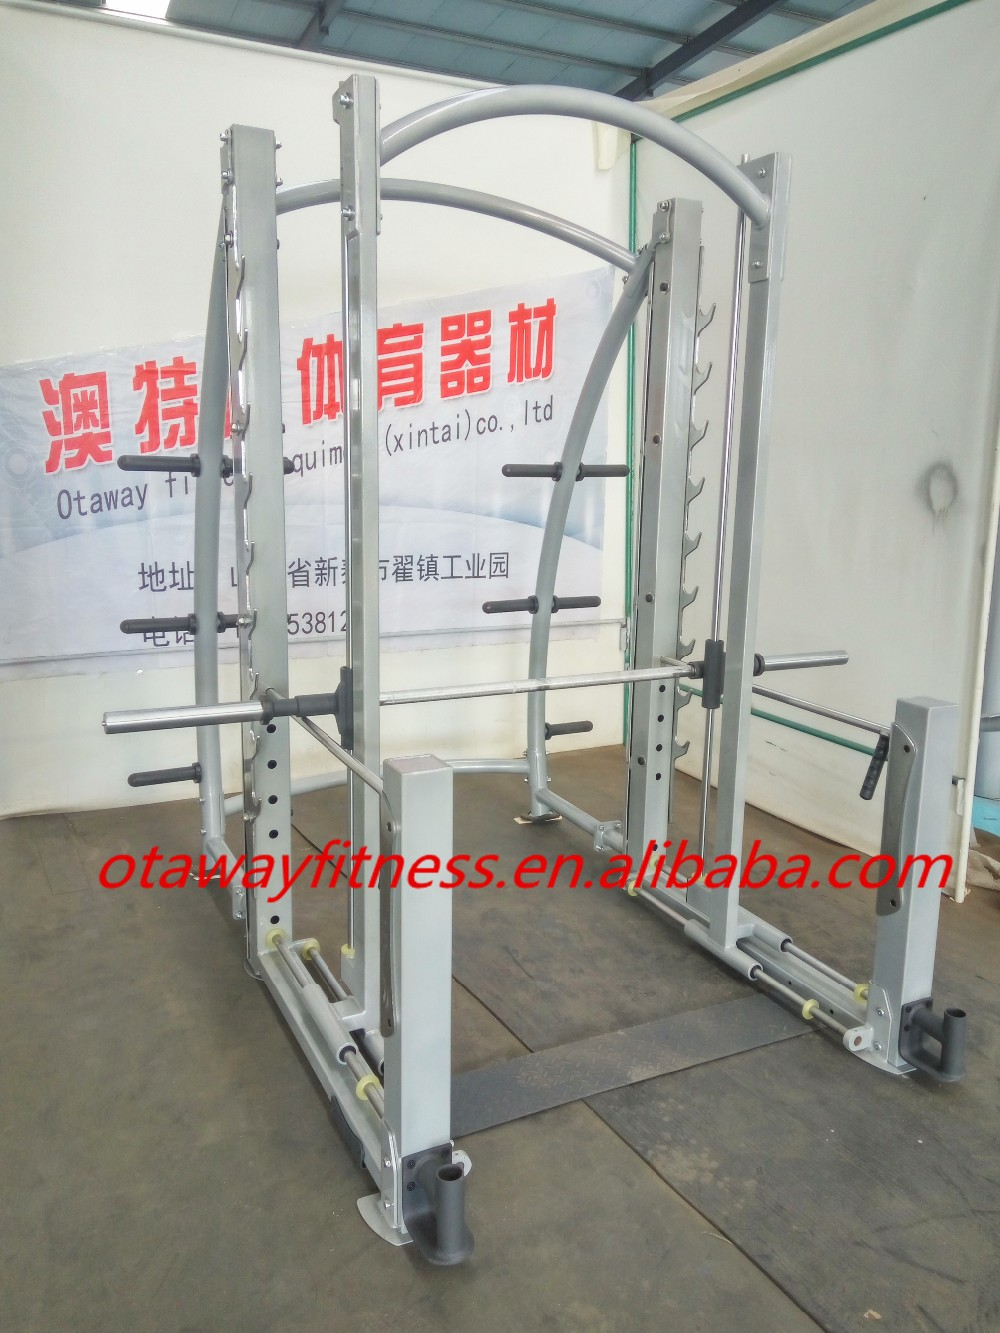 New Style Gym Equipment/Dual Action Smith machine /fitness equipment(T17-032)